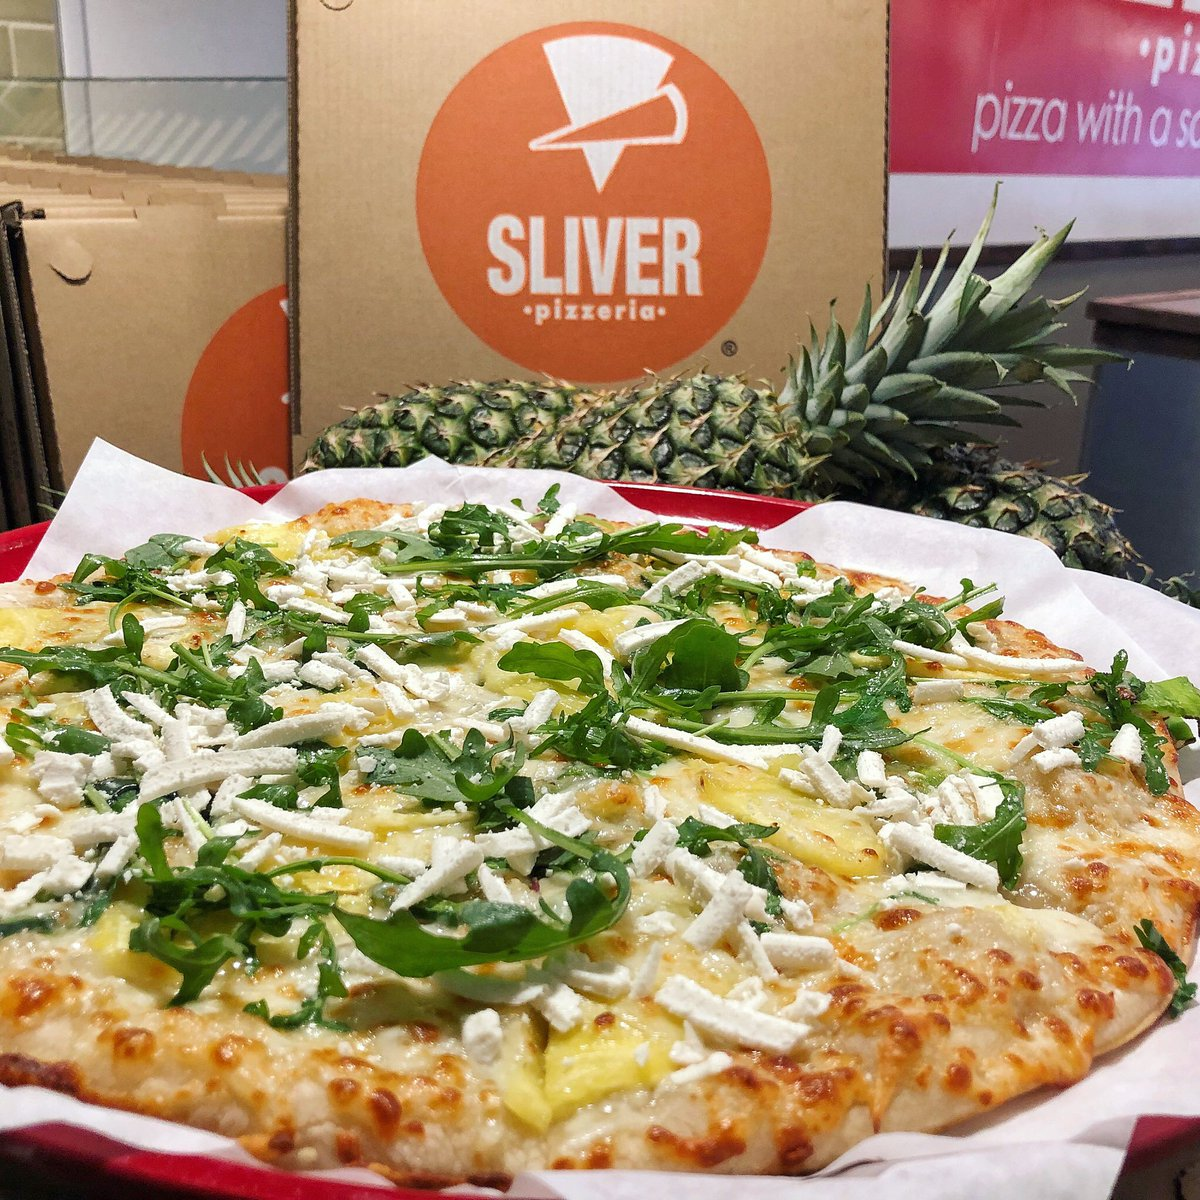 Sliver Pizzeria On Twitter For Those Who Were Sad To Miss Pineapple Day Previously Here S Your Chance For Some Delicious Pineapple Pizza Pineapplepizza Sliverpizzeria Pizzaoftheday Https T Co 0shpcc6gt0 Menus weekly pizzas telegraph broadway shattuck events locations. twitter